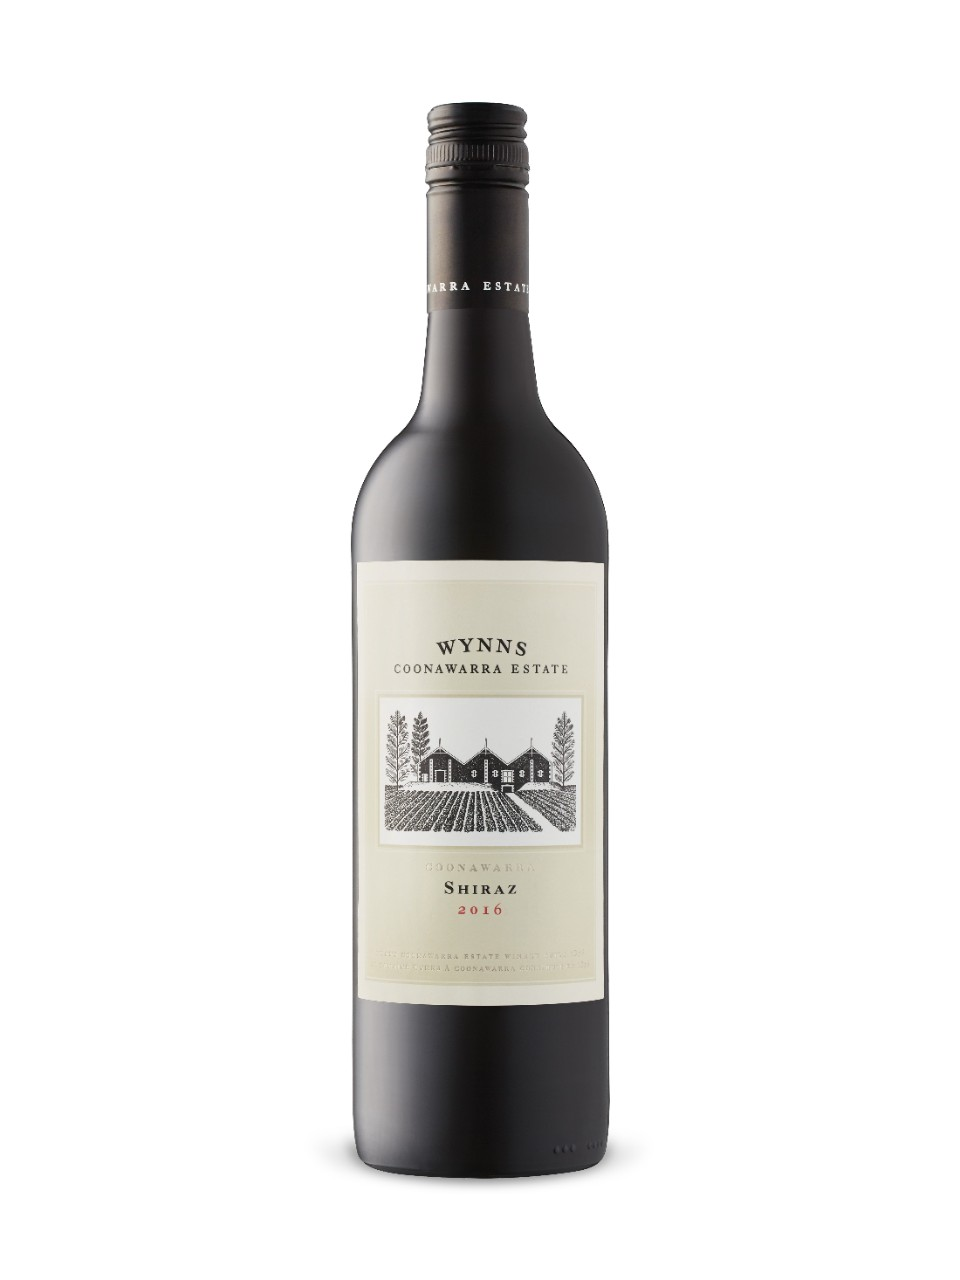 Wynns Coonawarra Estate Shiraz 2016